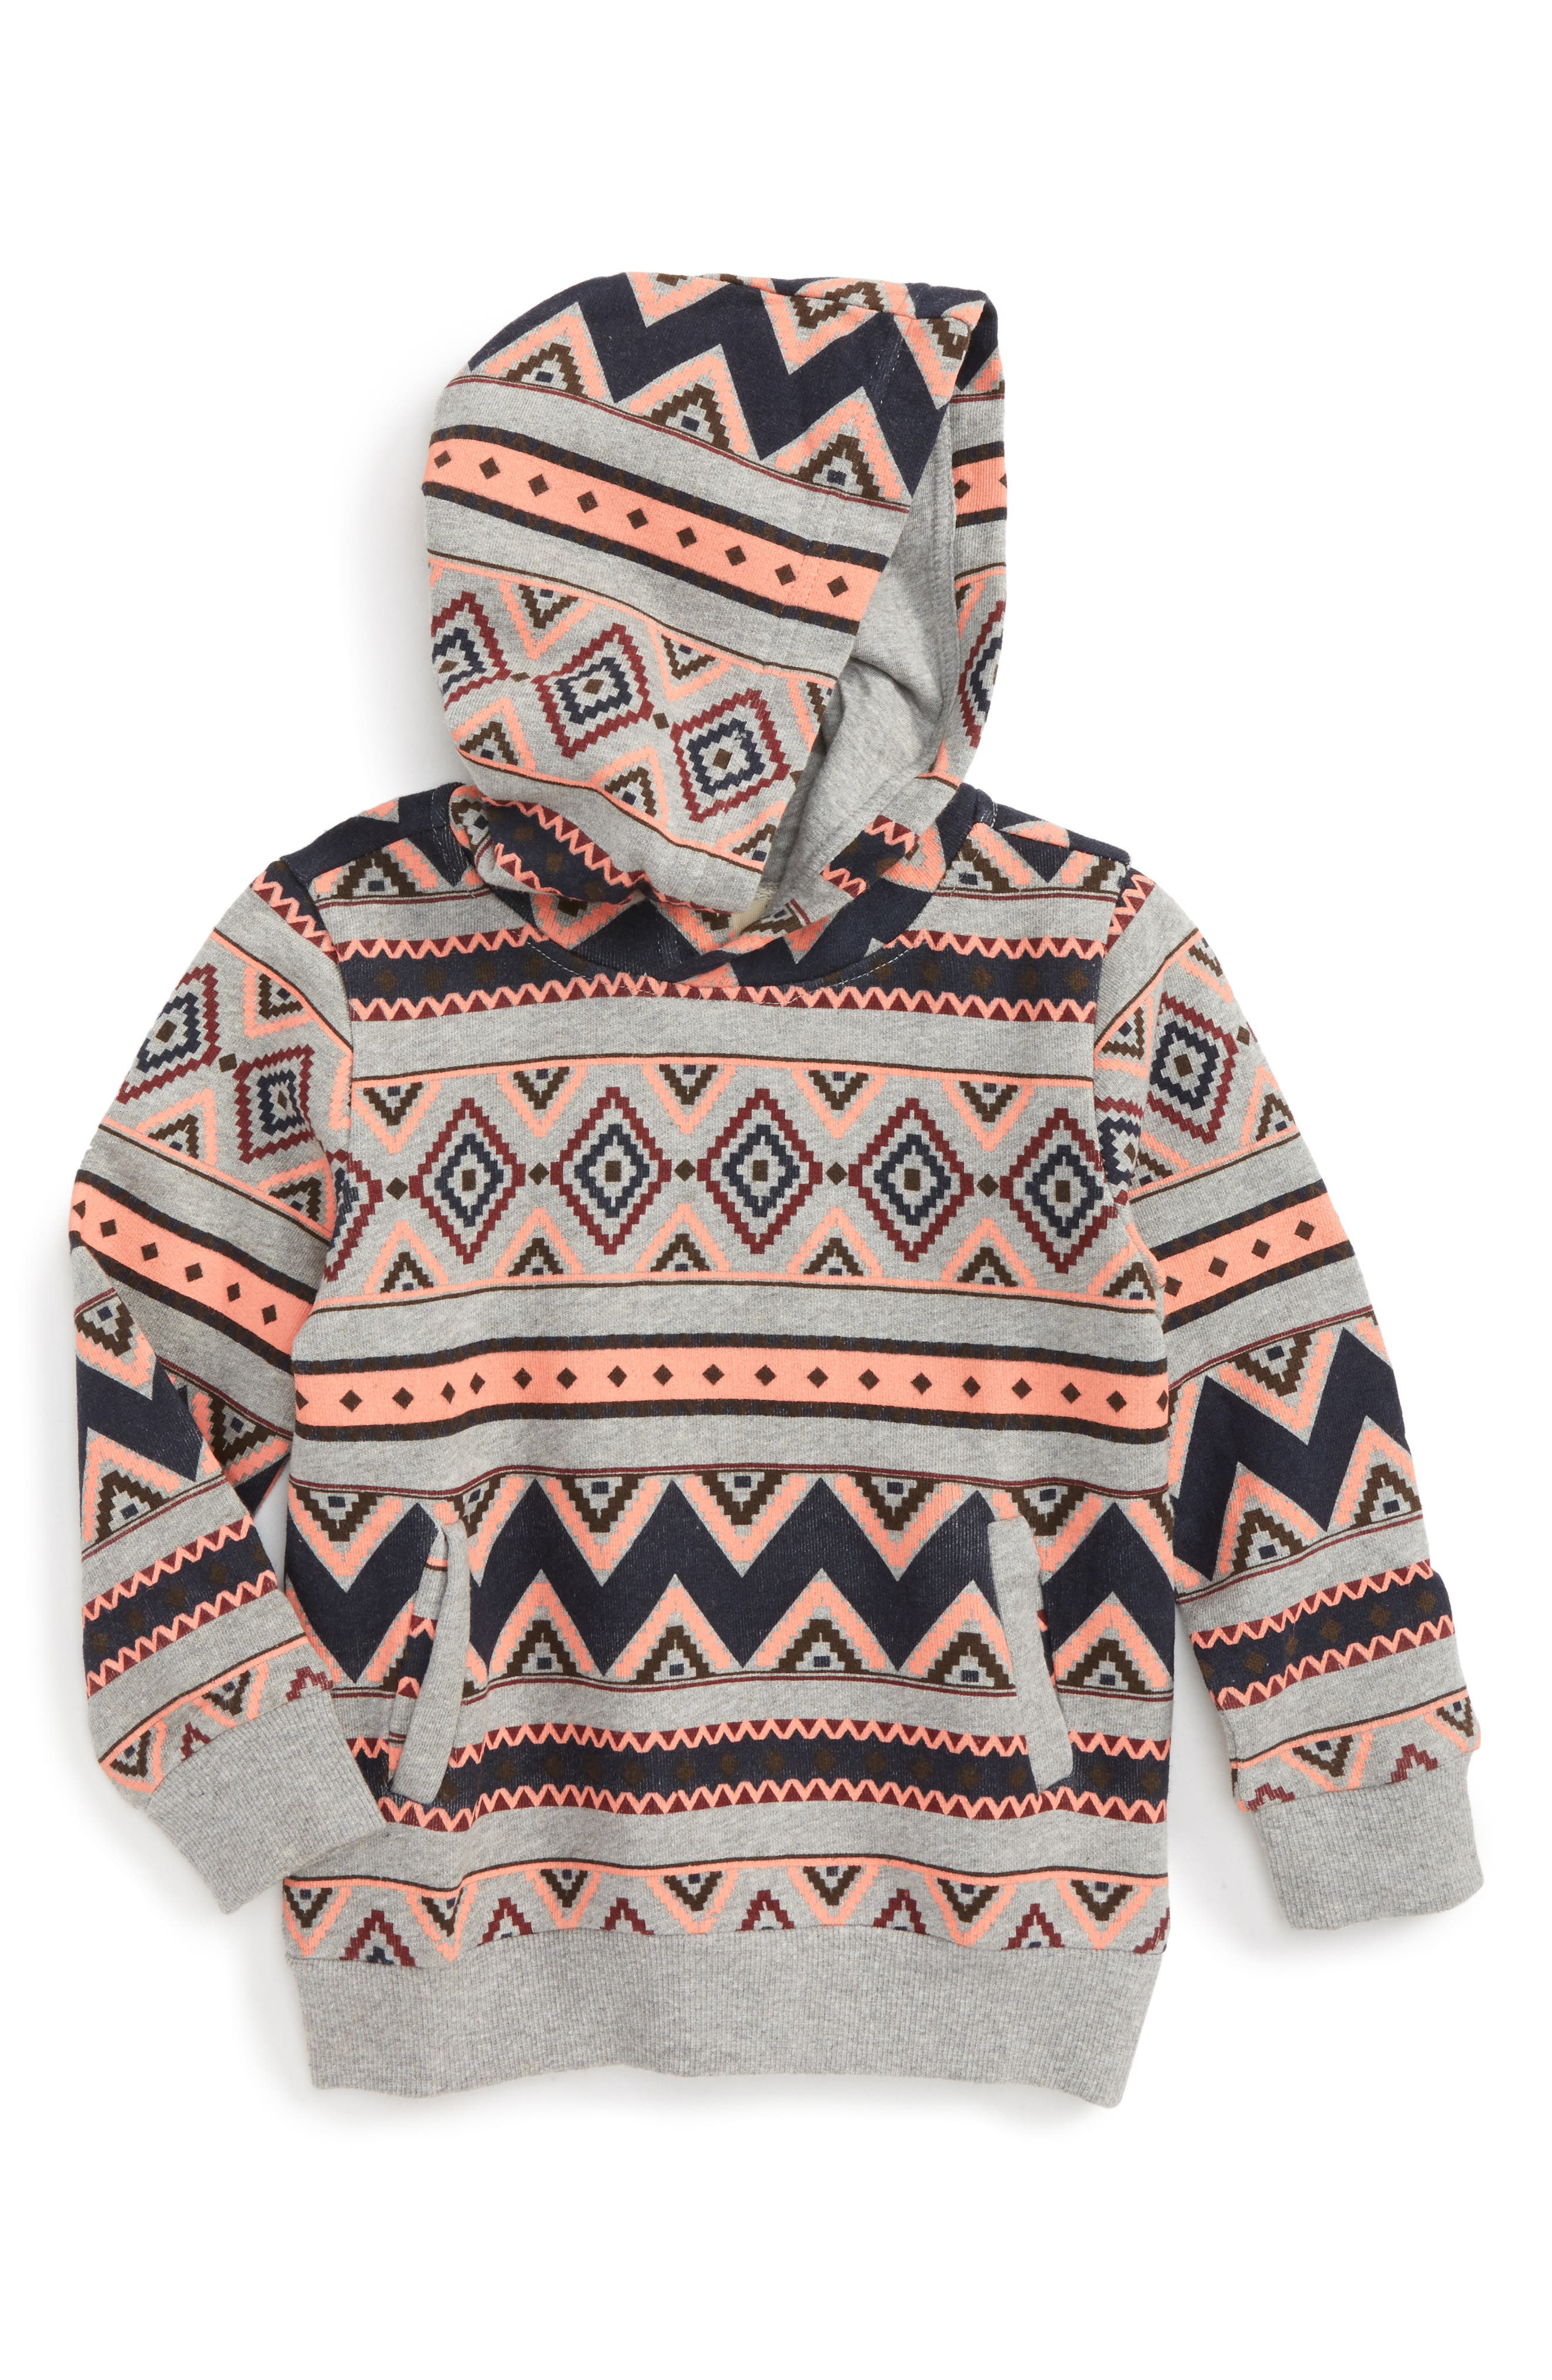 Alternate Image 1 Selected - Peek Geo Print Hoodie (Toddler Boys, Little Boys & Big Boys)